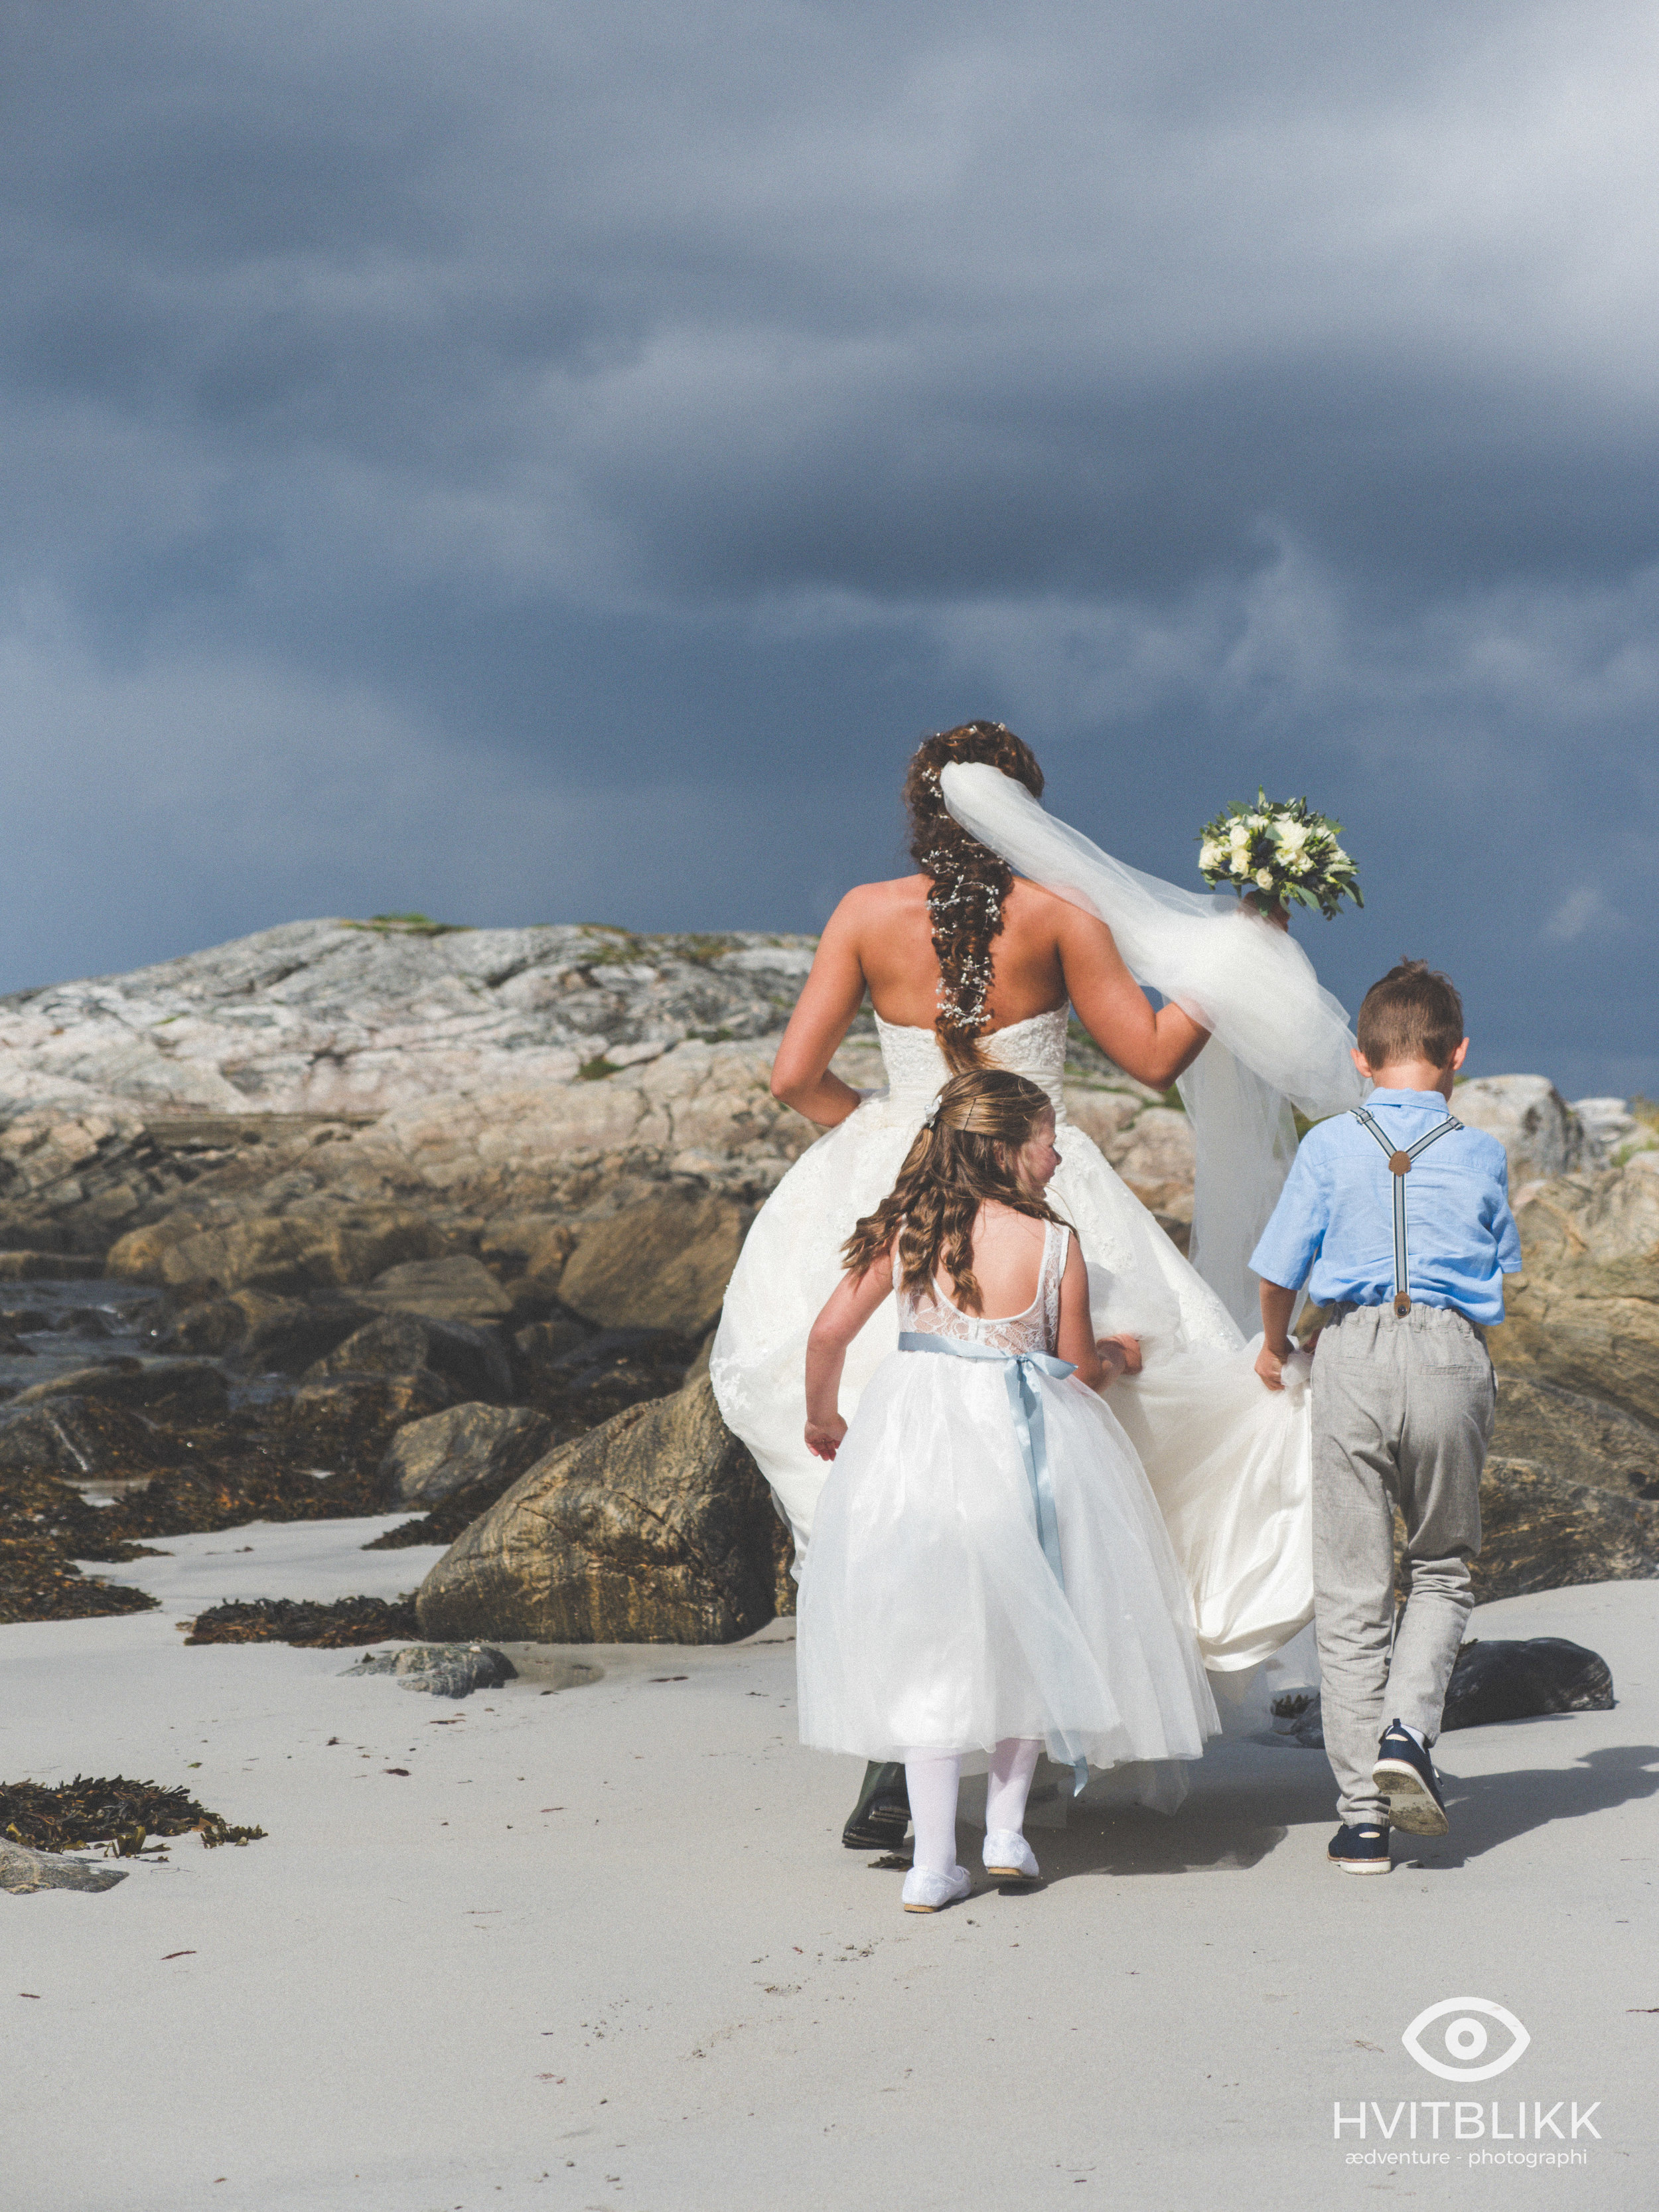 Photography - weddings and events